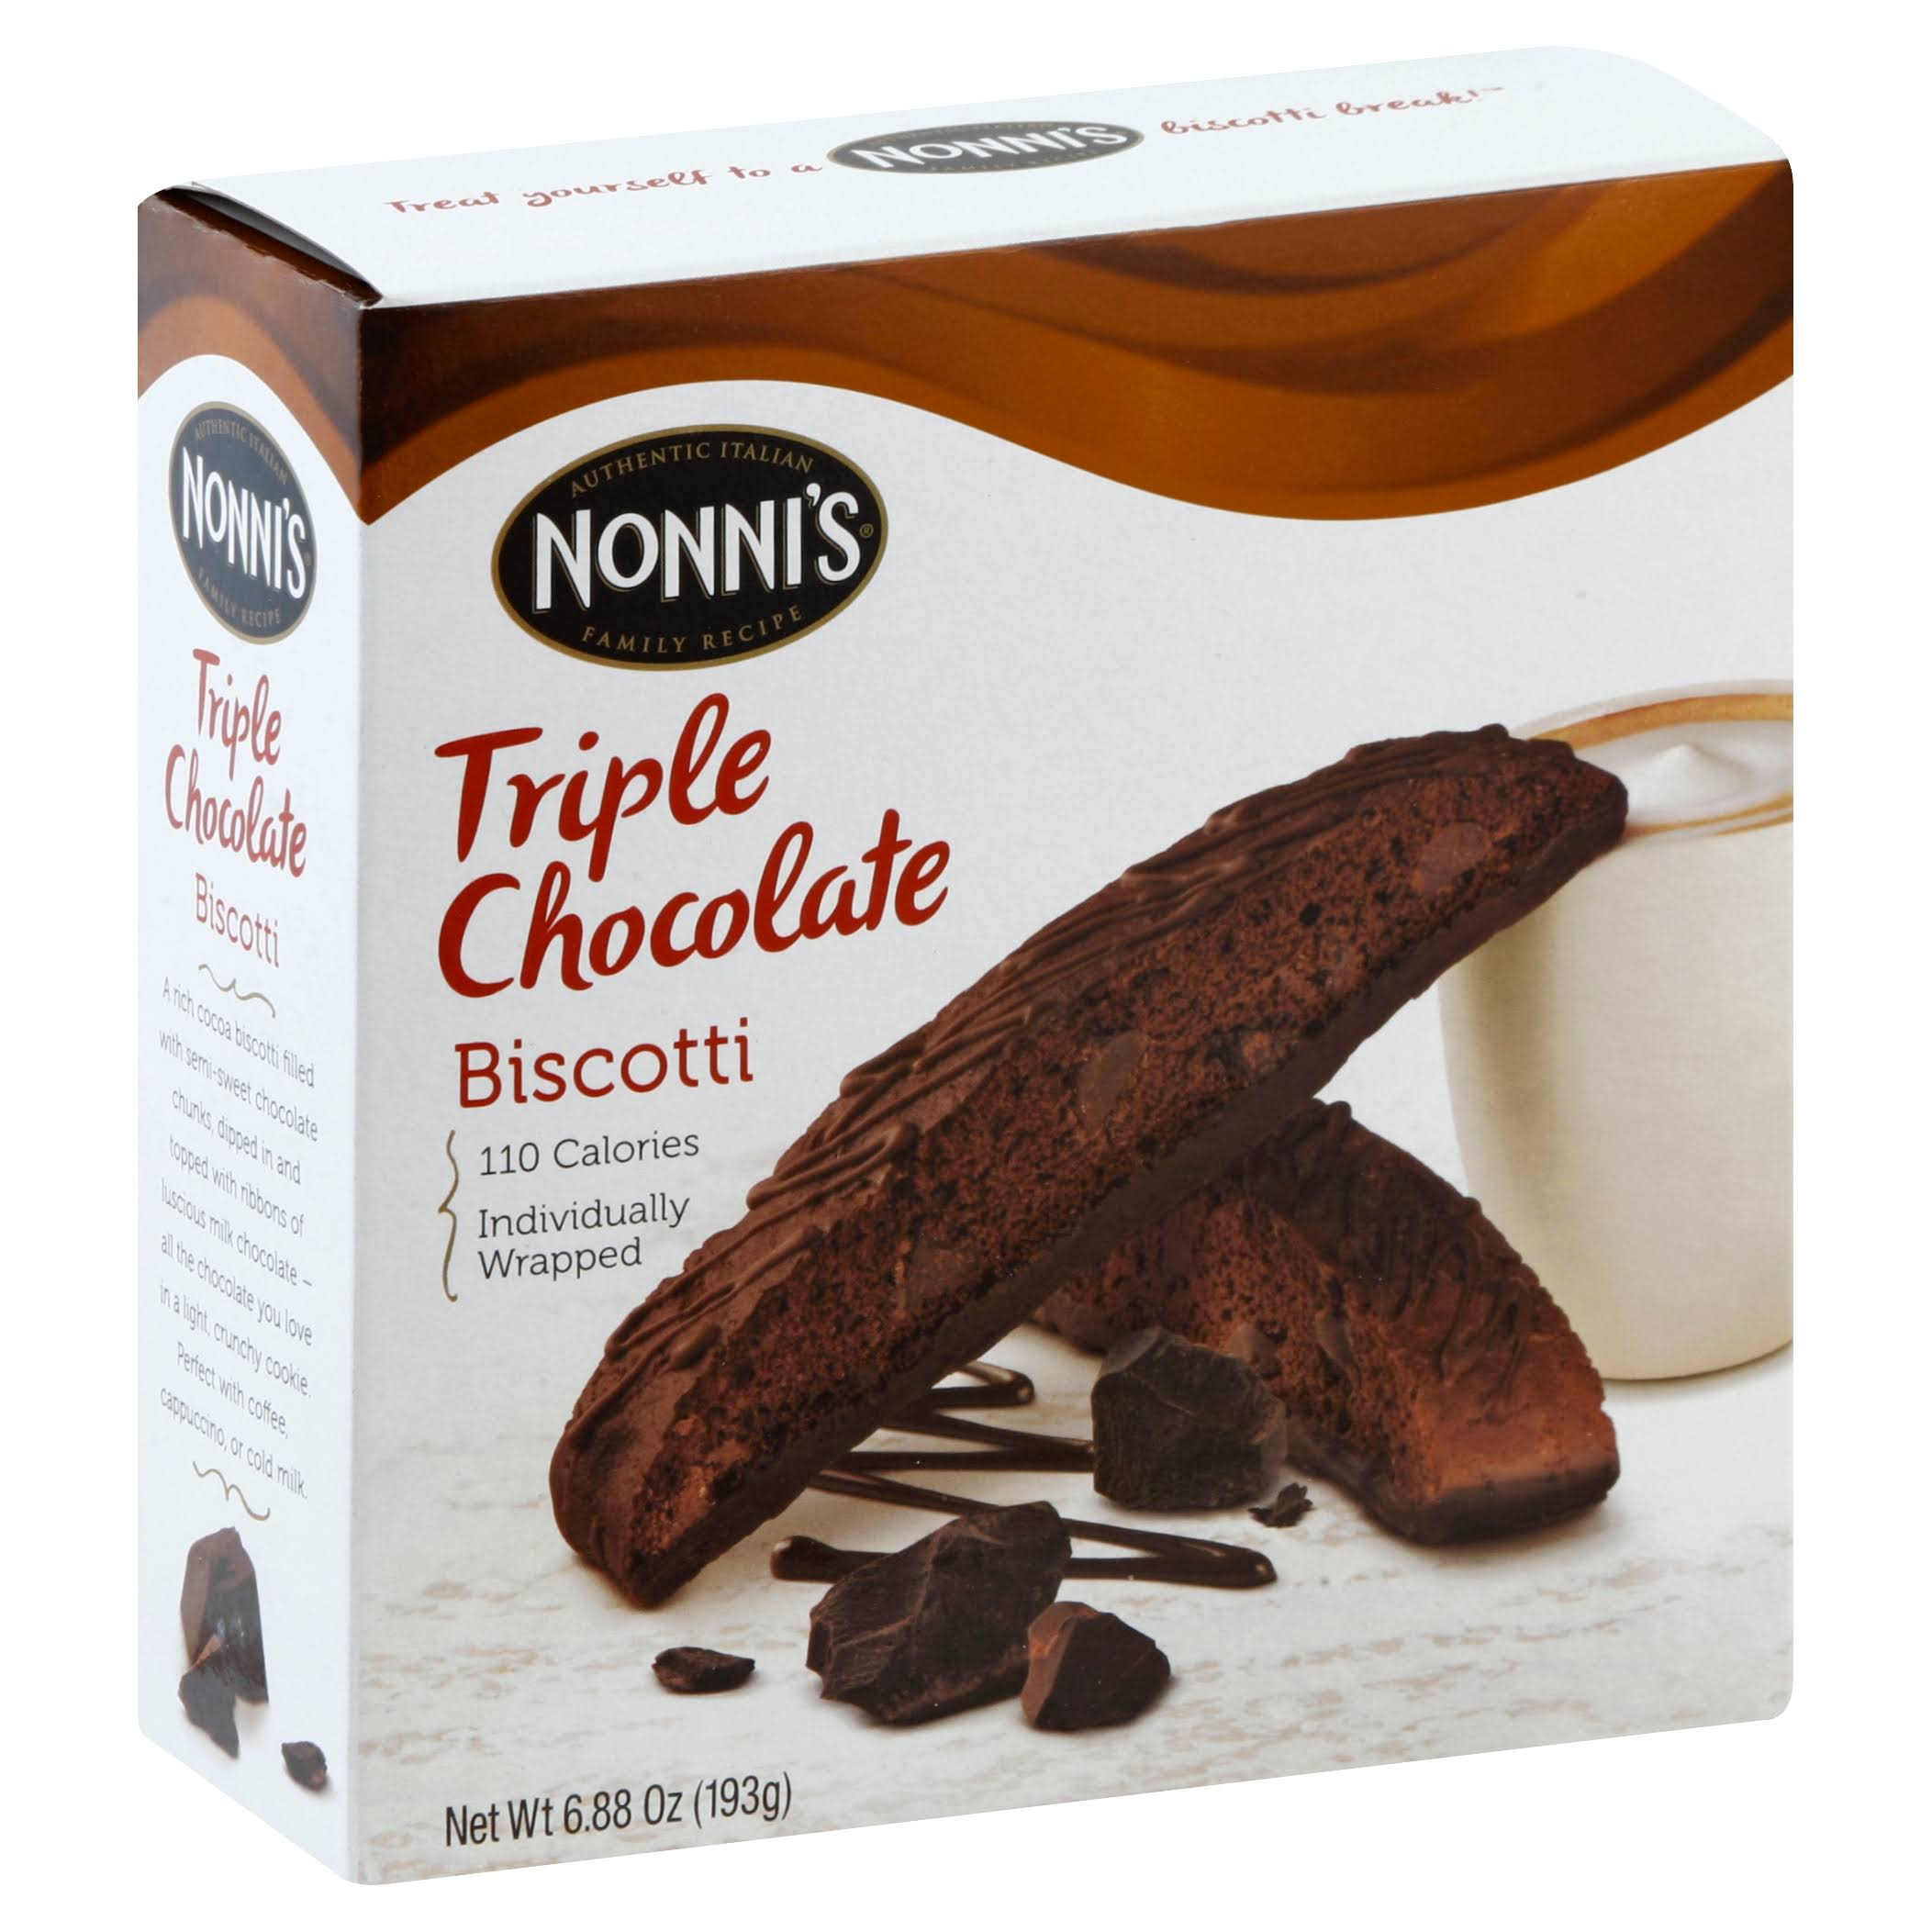 Nonnis Biscotti Triple Chocolate - 6.8oz, 8ct